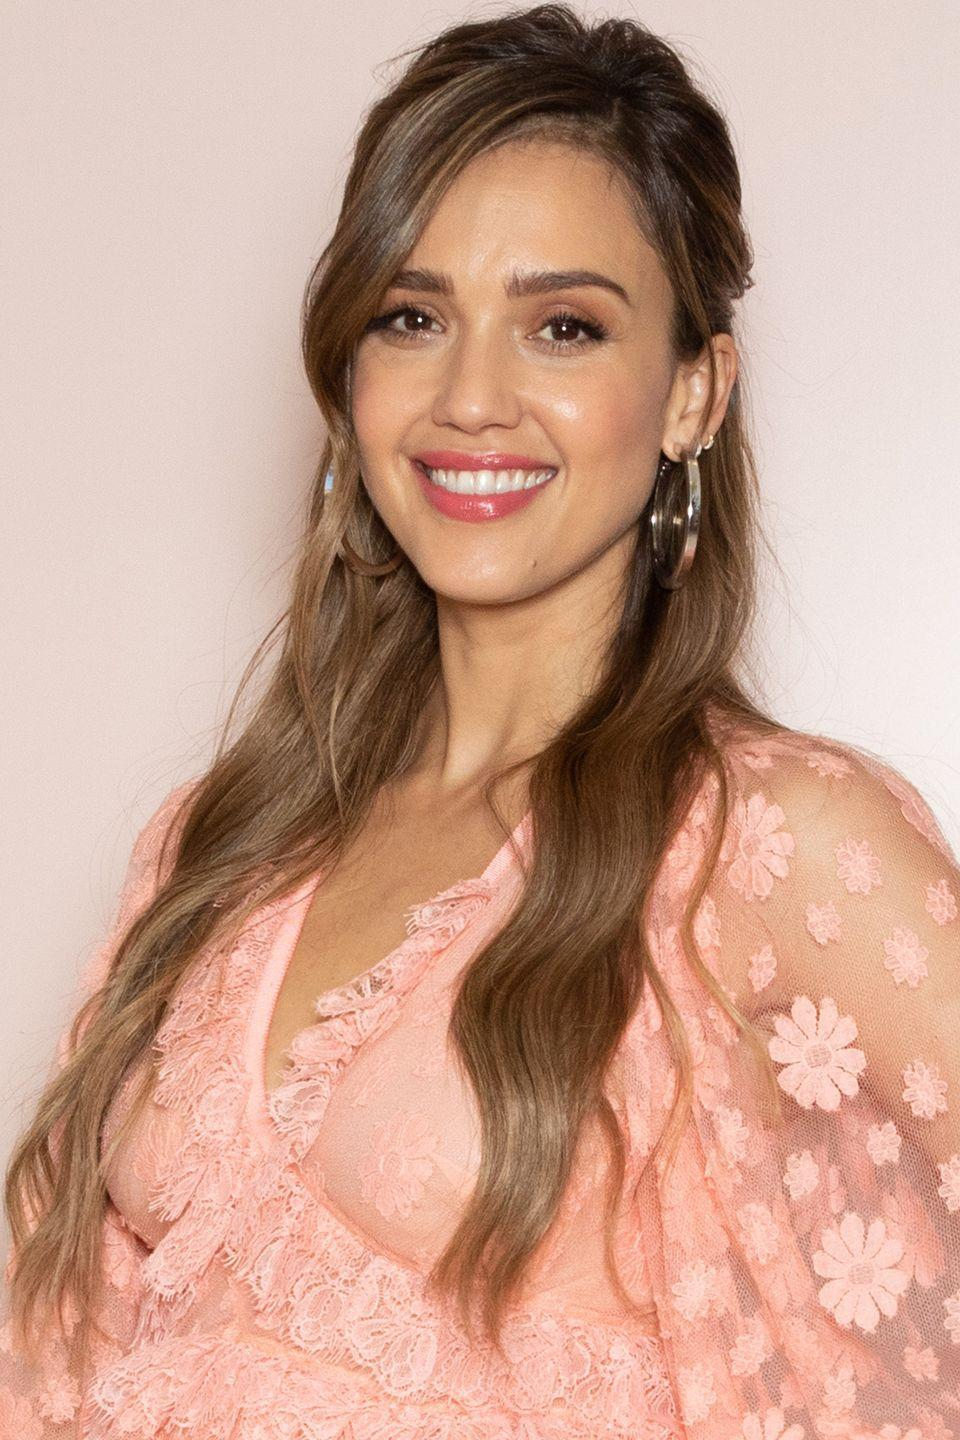 <p>Jessica Alba wears her beach waves in a relaxed look with a side part. The style is the perfect frame for a pair of statement earrings.</p>